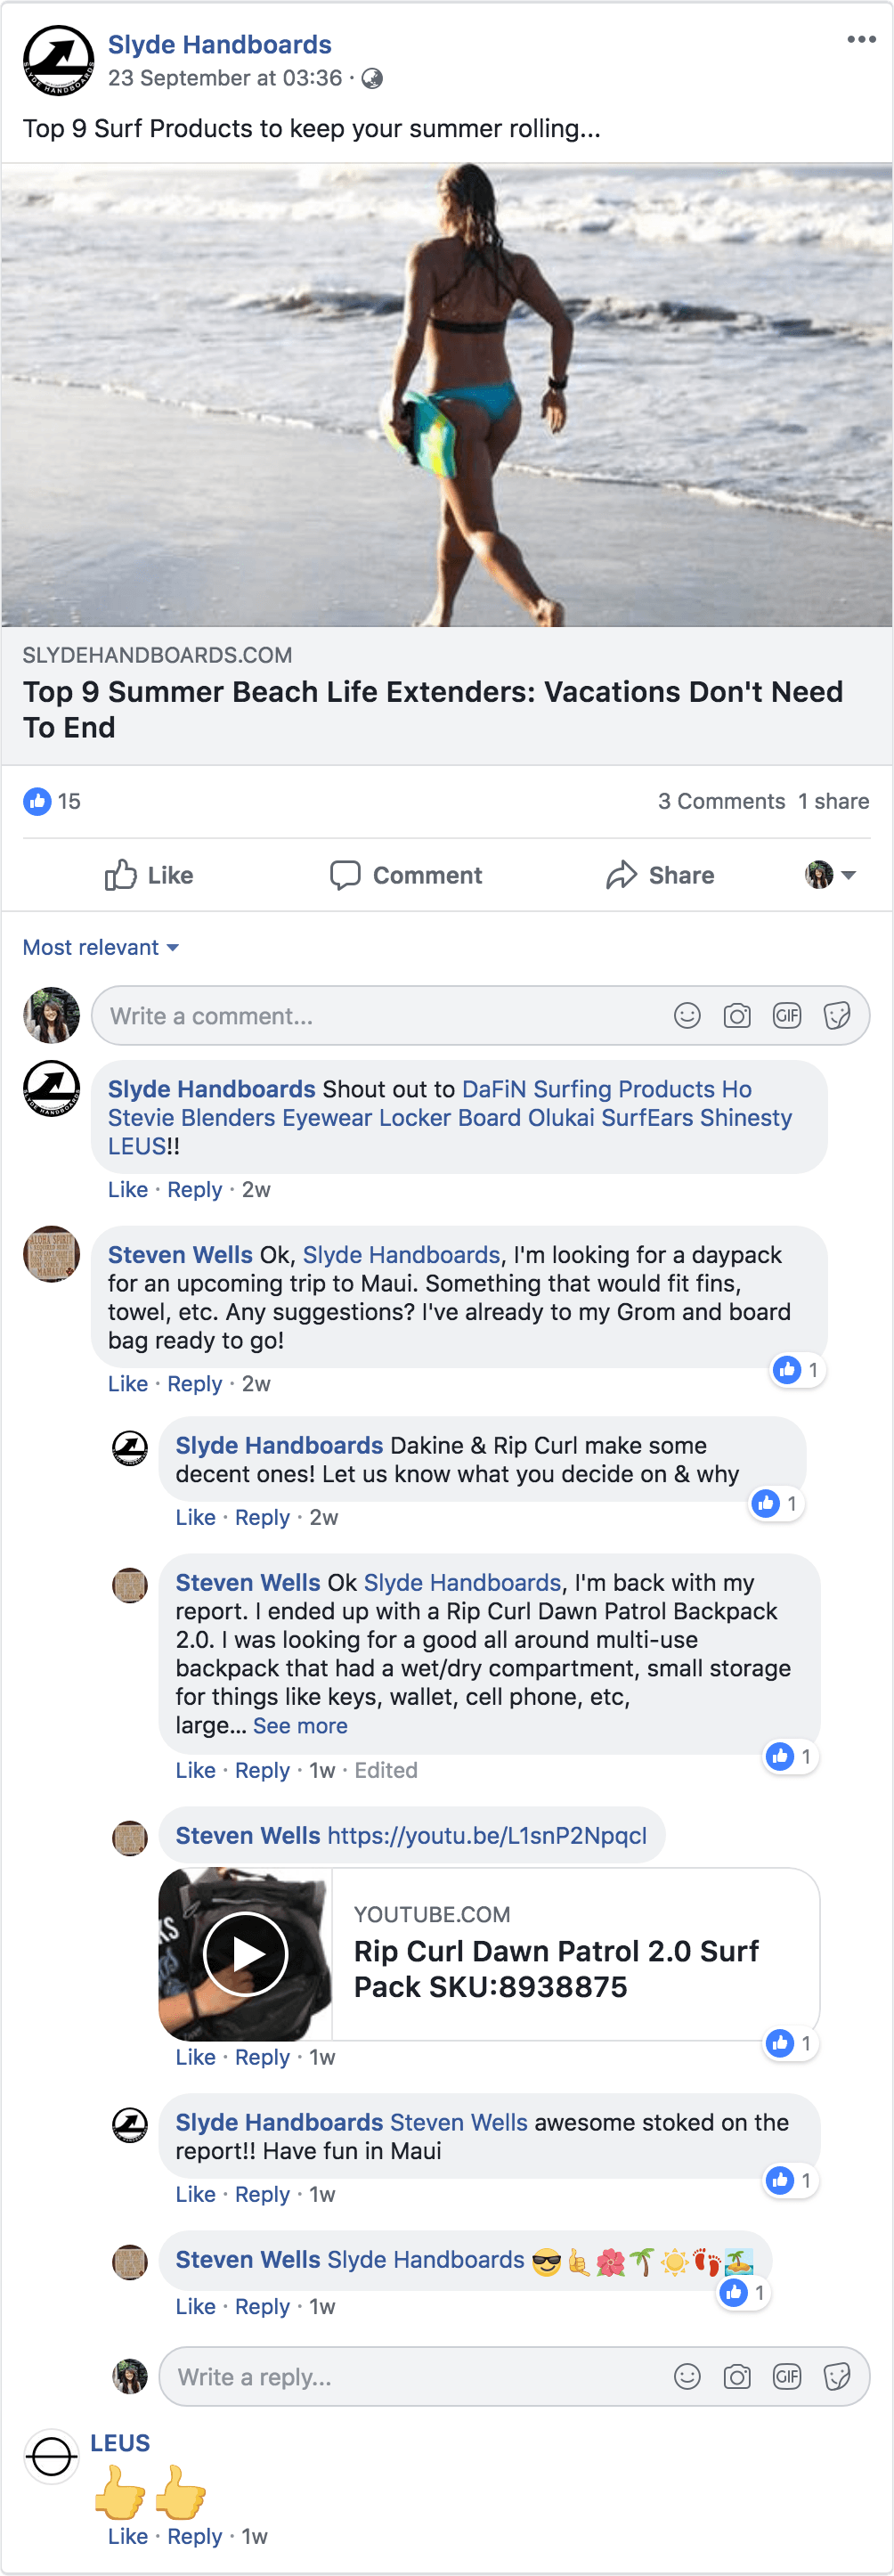 Slyde Handboards Responding To Comments On Facebook